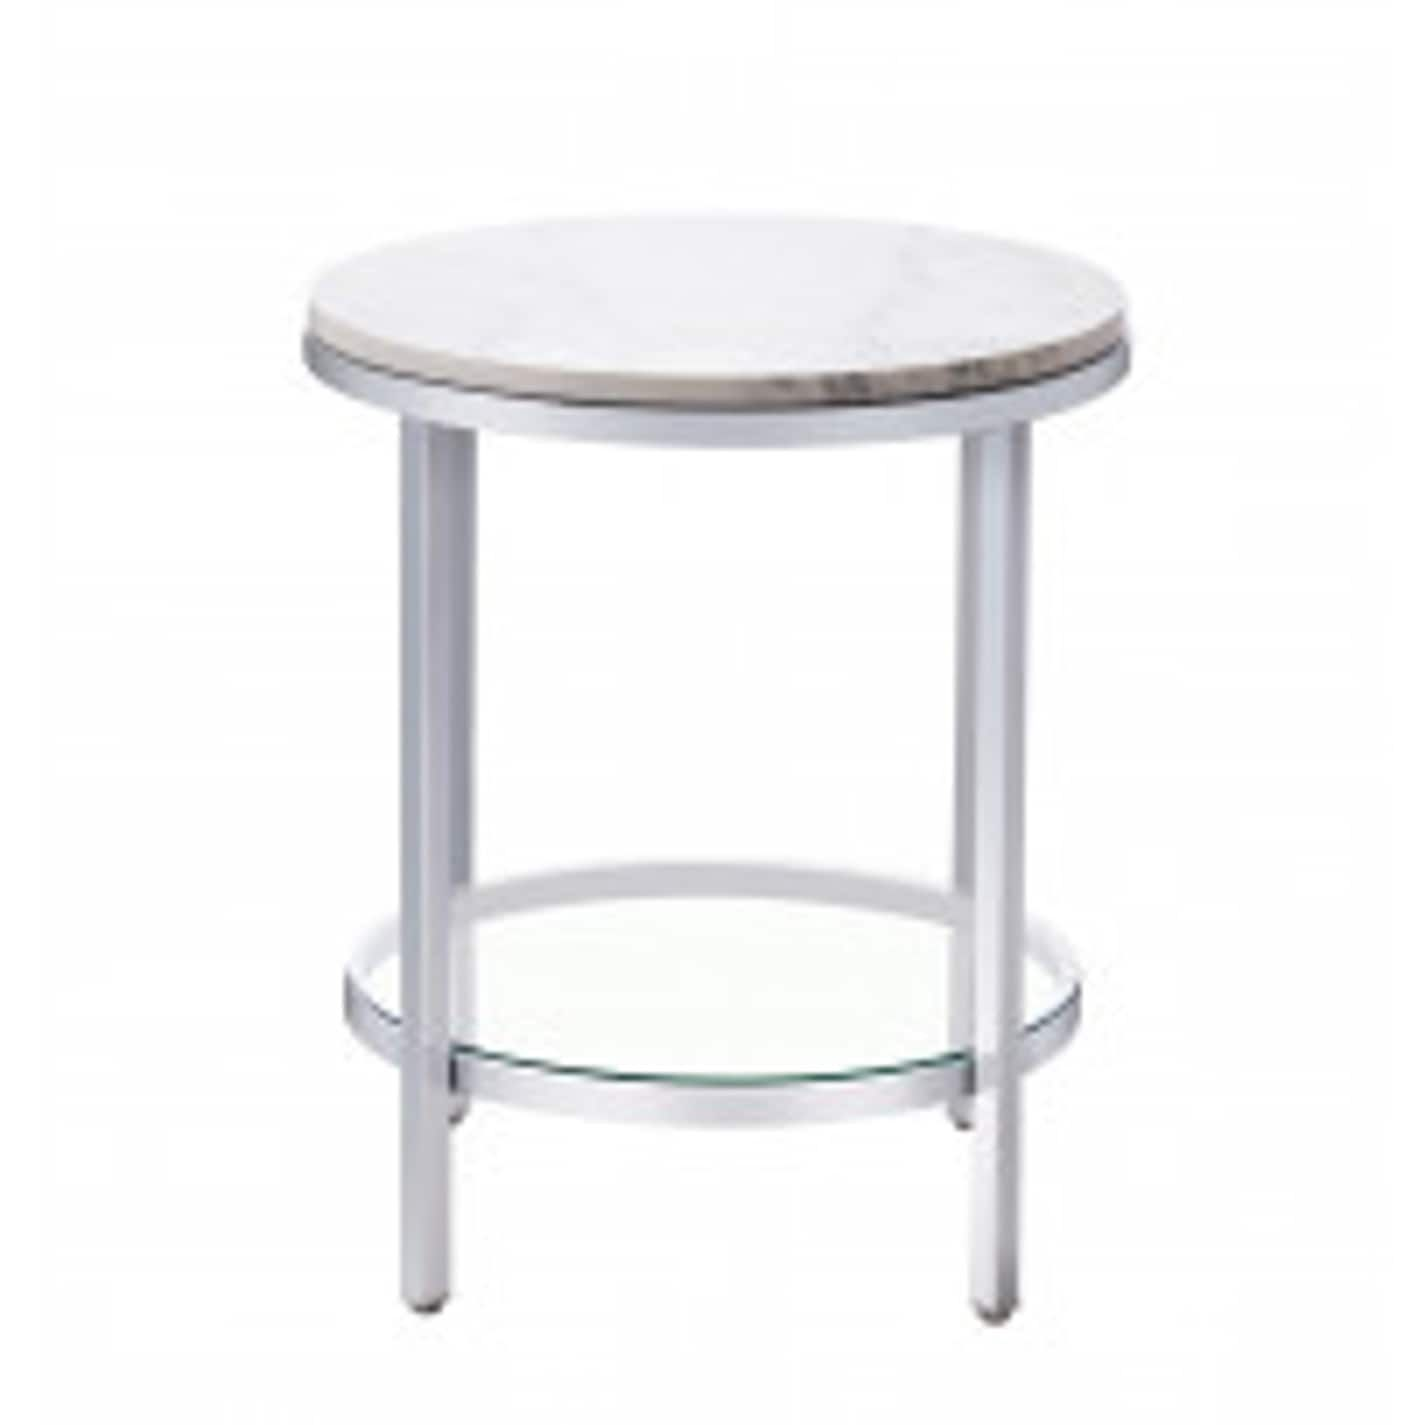 Bassett Mirror pany Jadyn RD Silver Steel Marble End Table